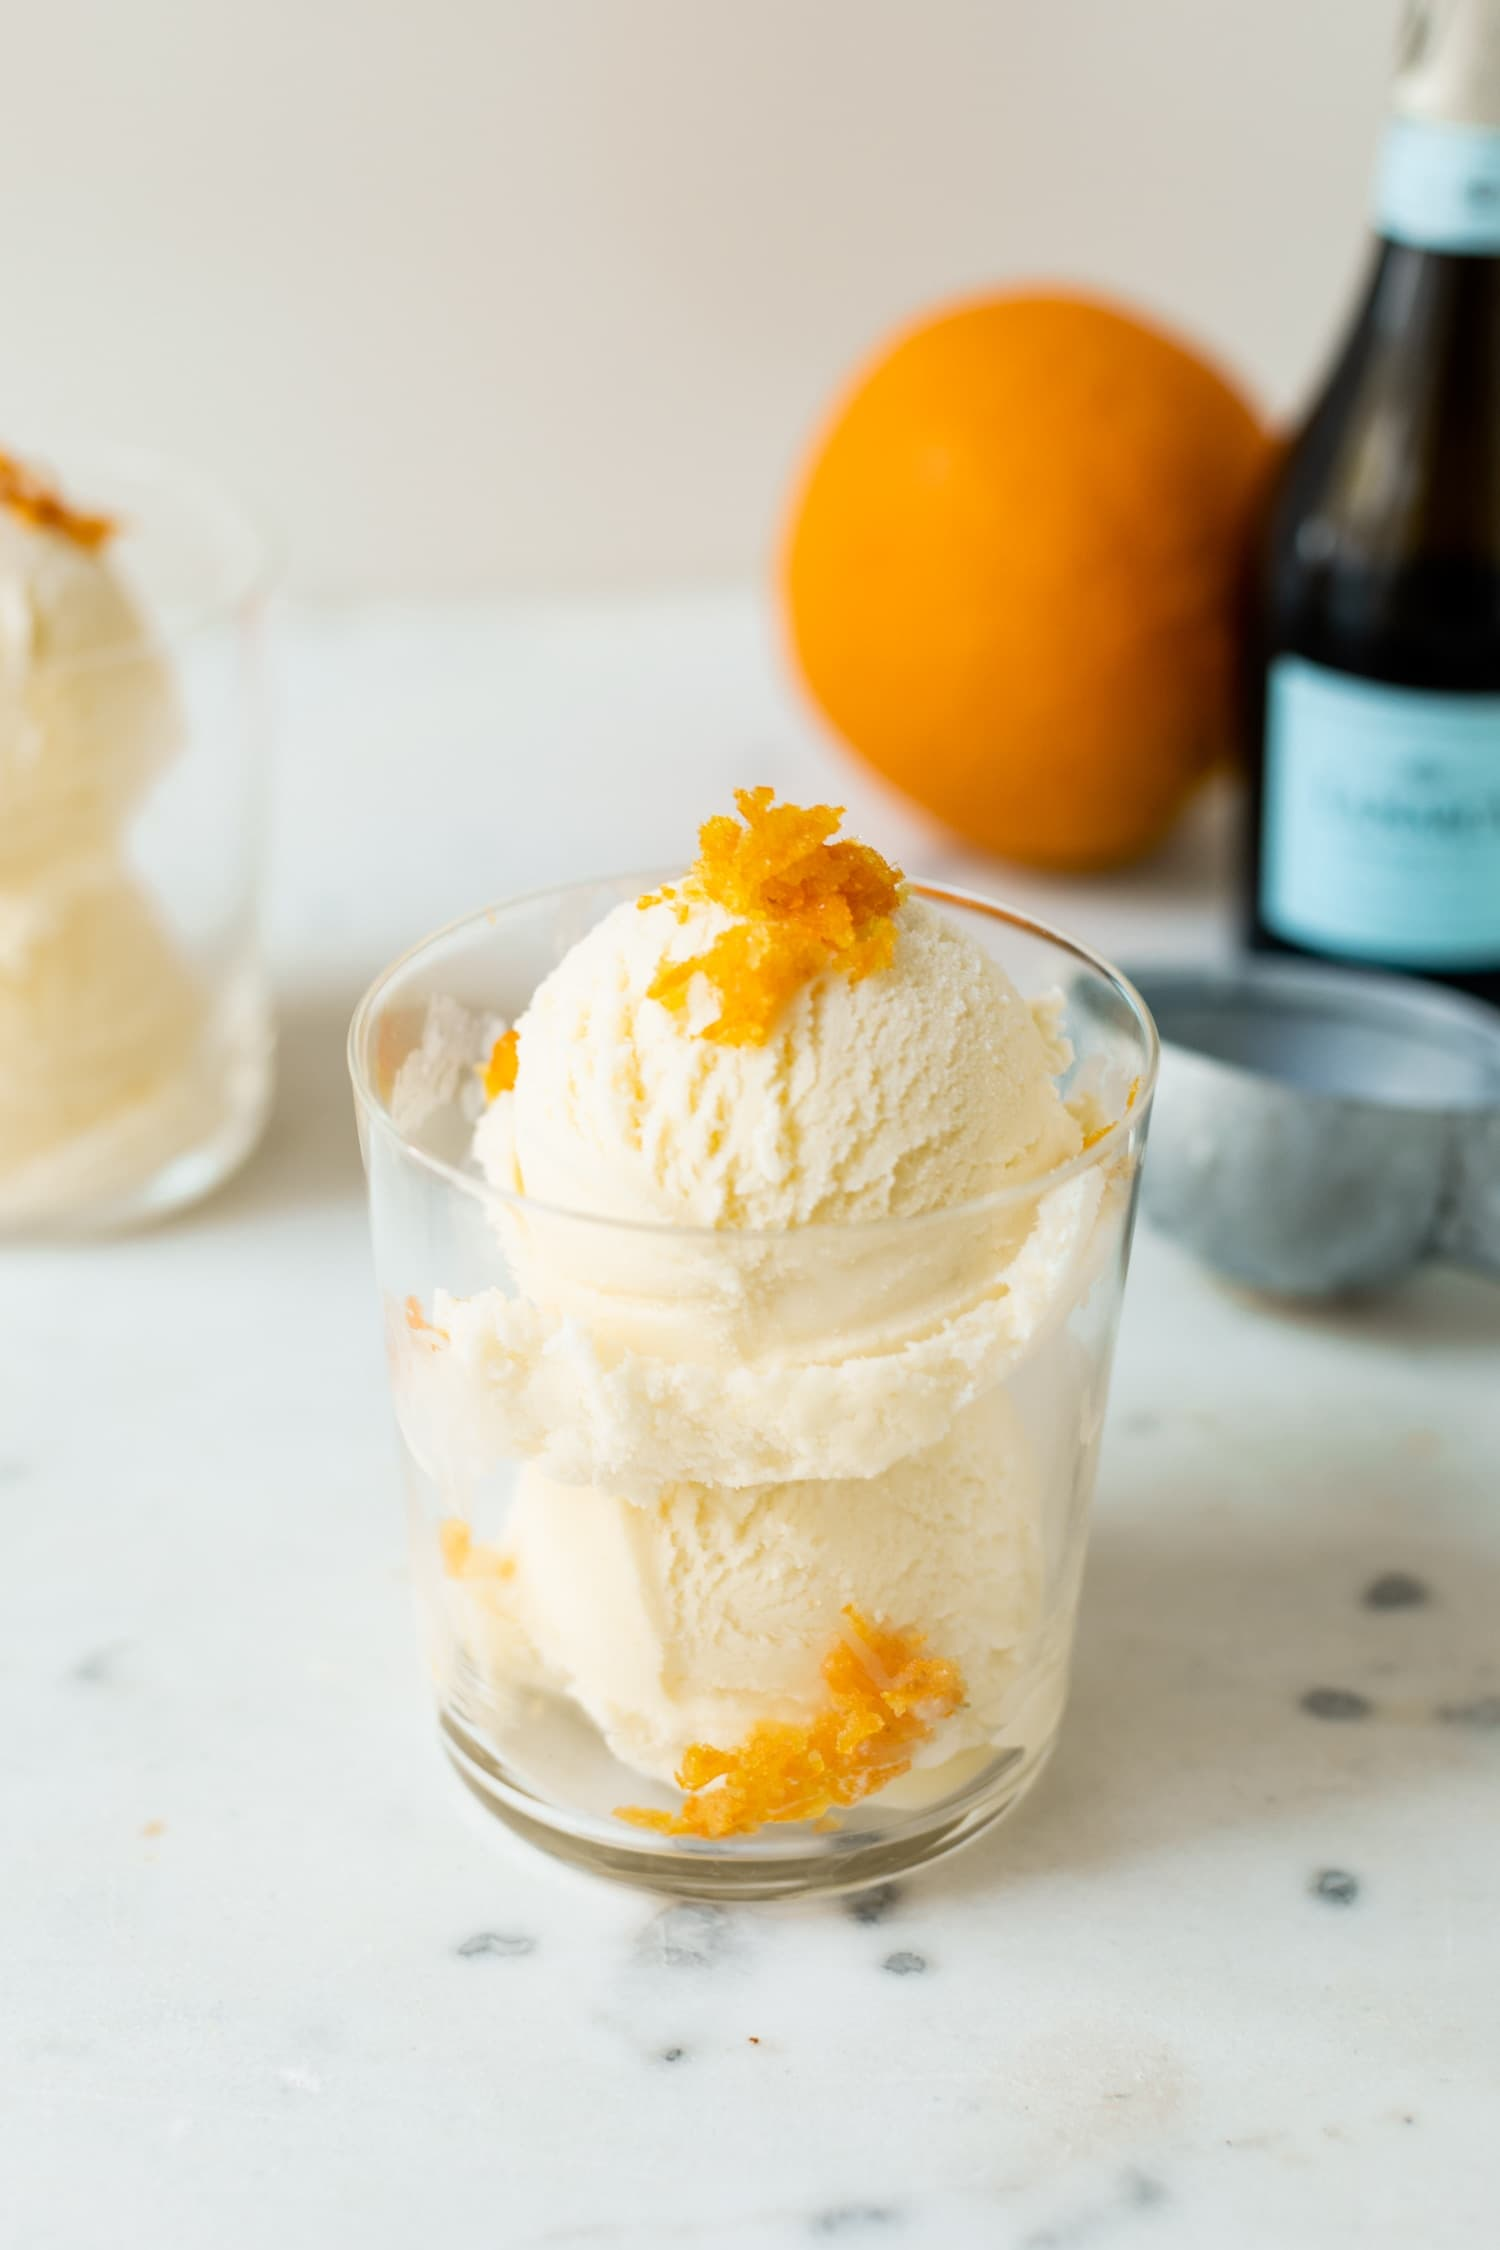 Mimosa ice cream speckled with orange zest pieces in a clear glass with second ice cream cup, orange, ice cream scoop and champagne bottle in background on a white marble surface